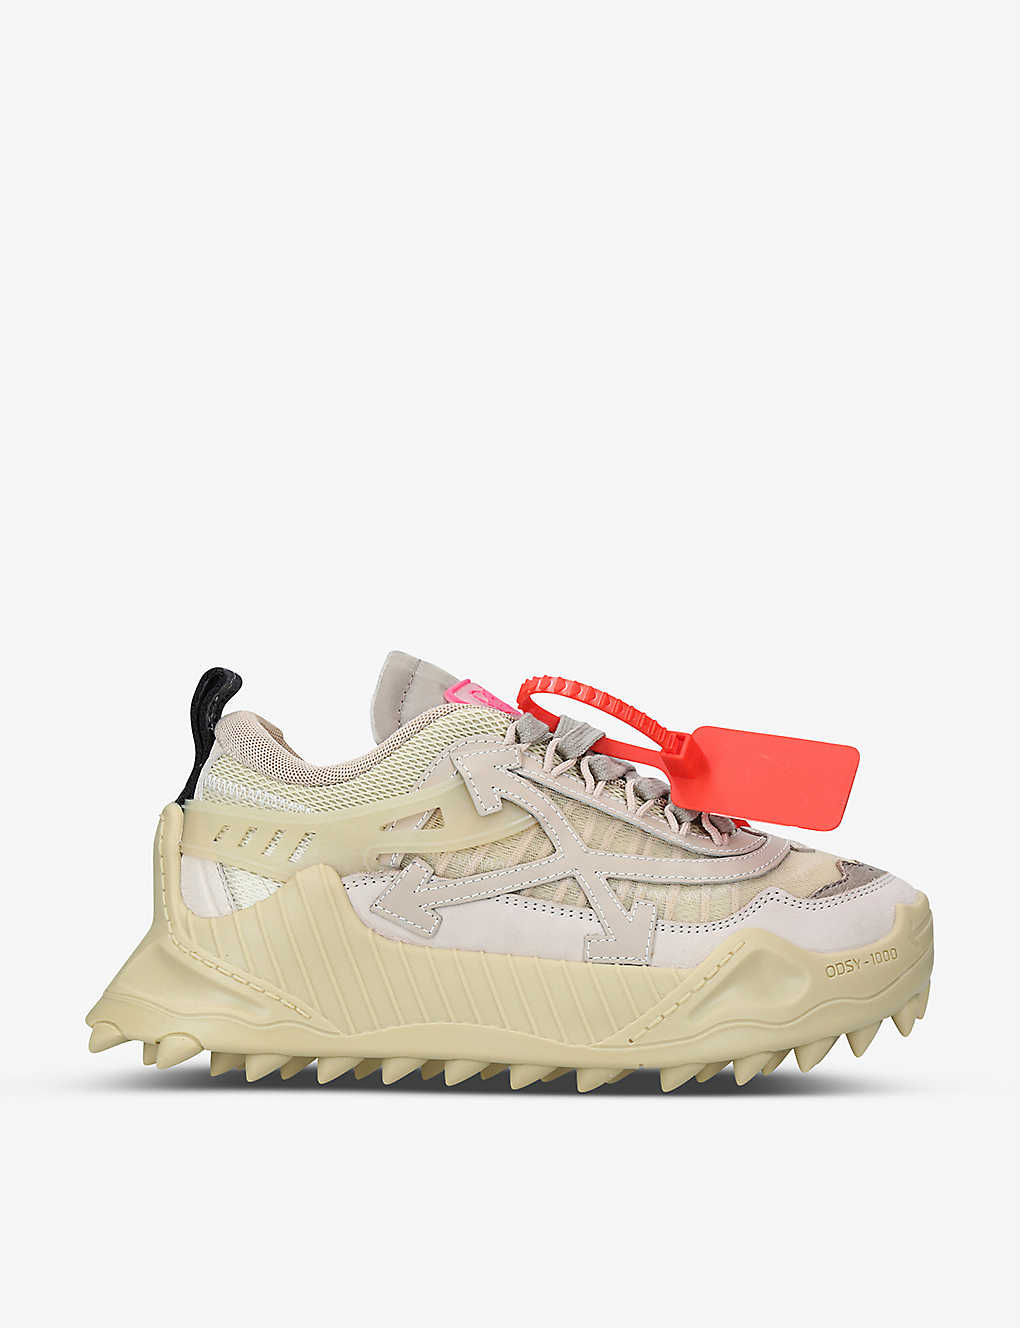 OFF-WHITE C/O VIRGIL ABLOH: ODSY-1000 leather trainers